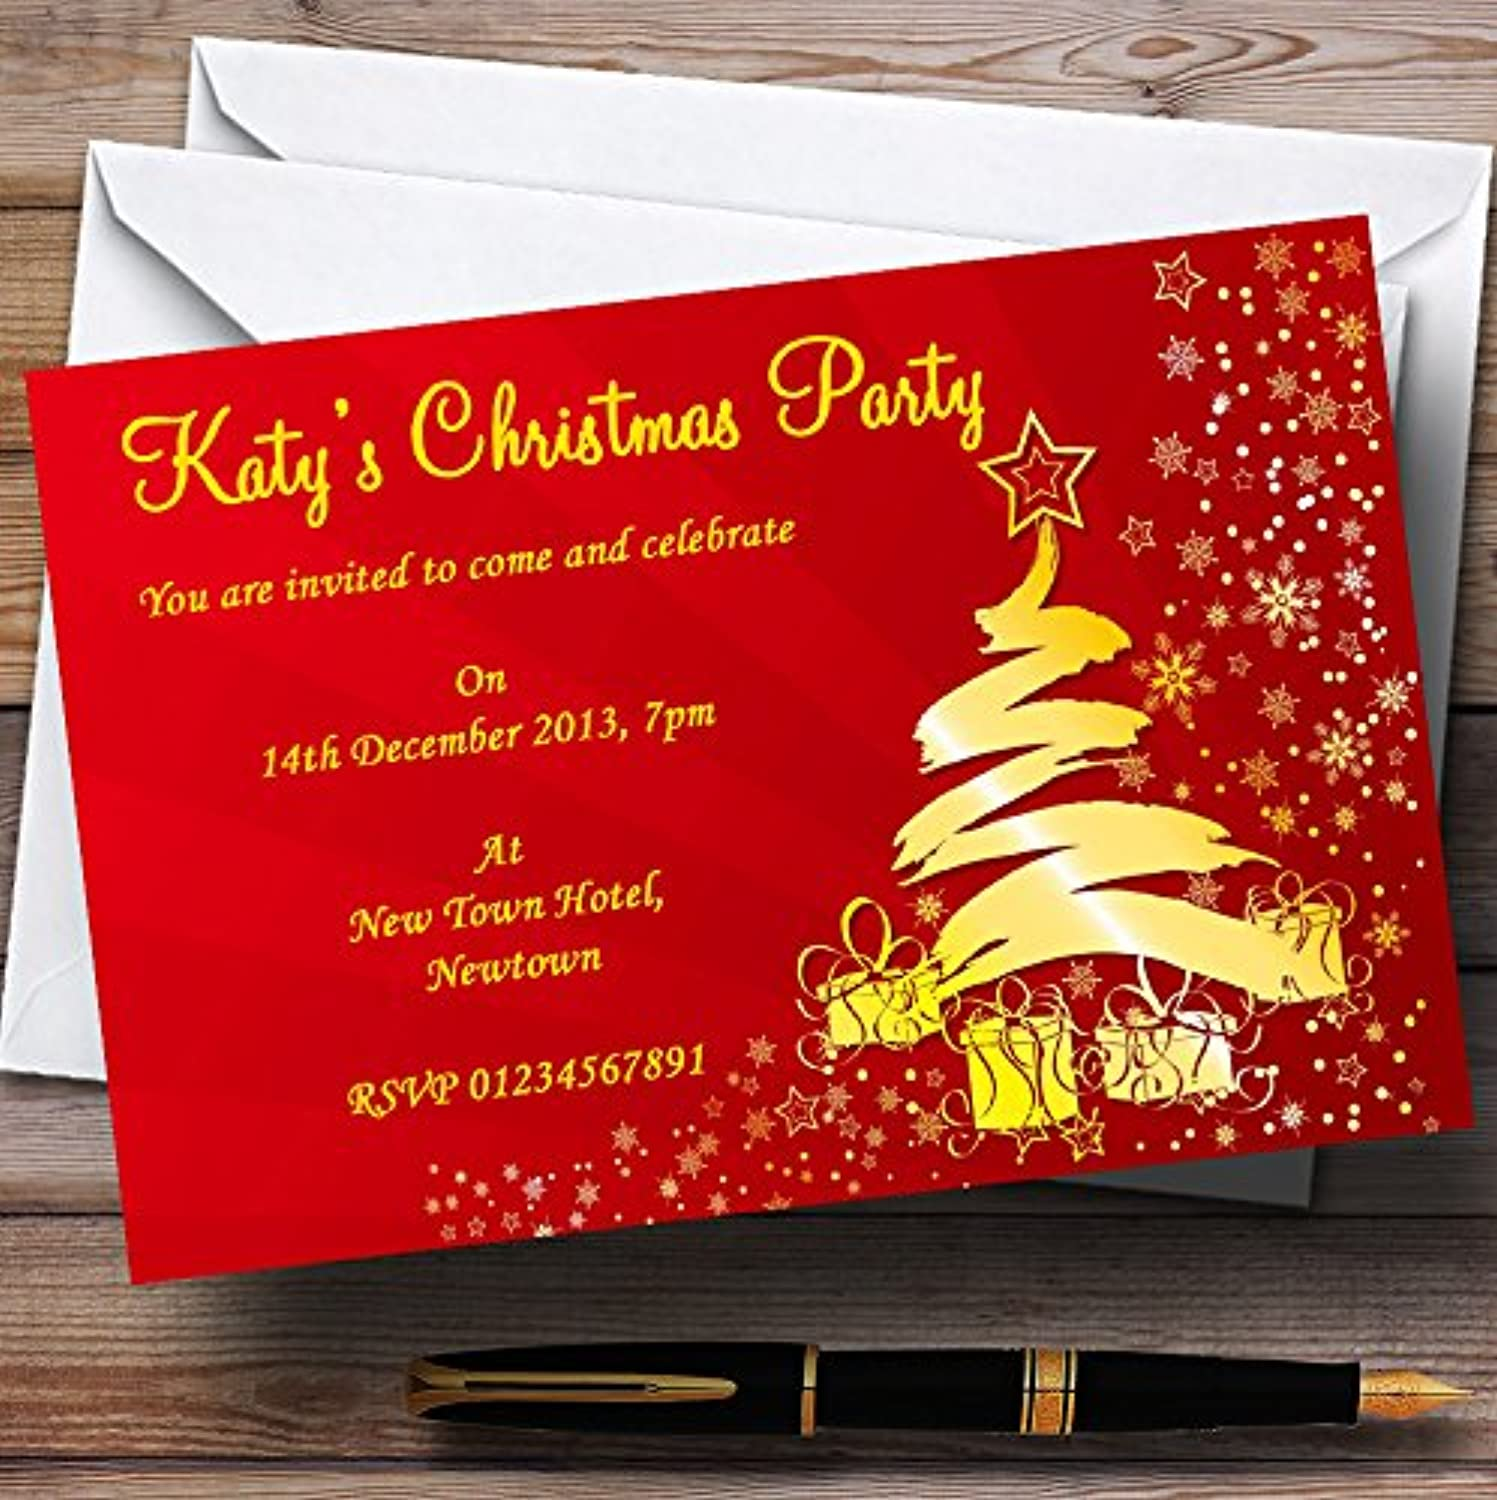 Red & gold Personalised Christmas   New Year   Holiday Party Invitations   Invites & Envelopes